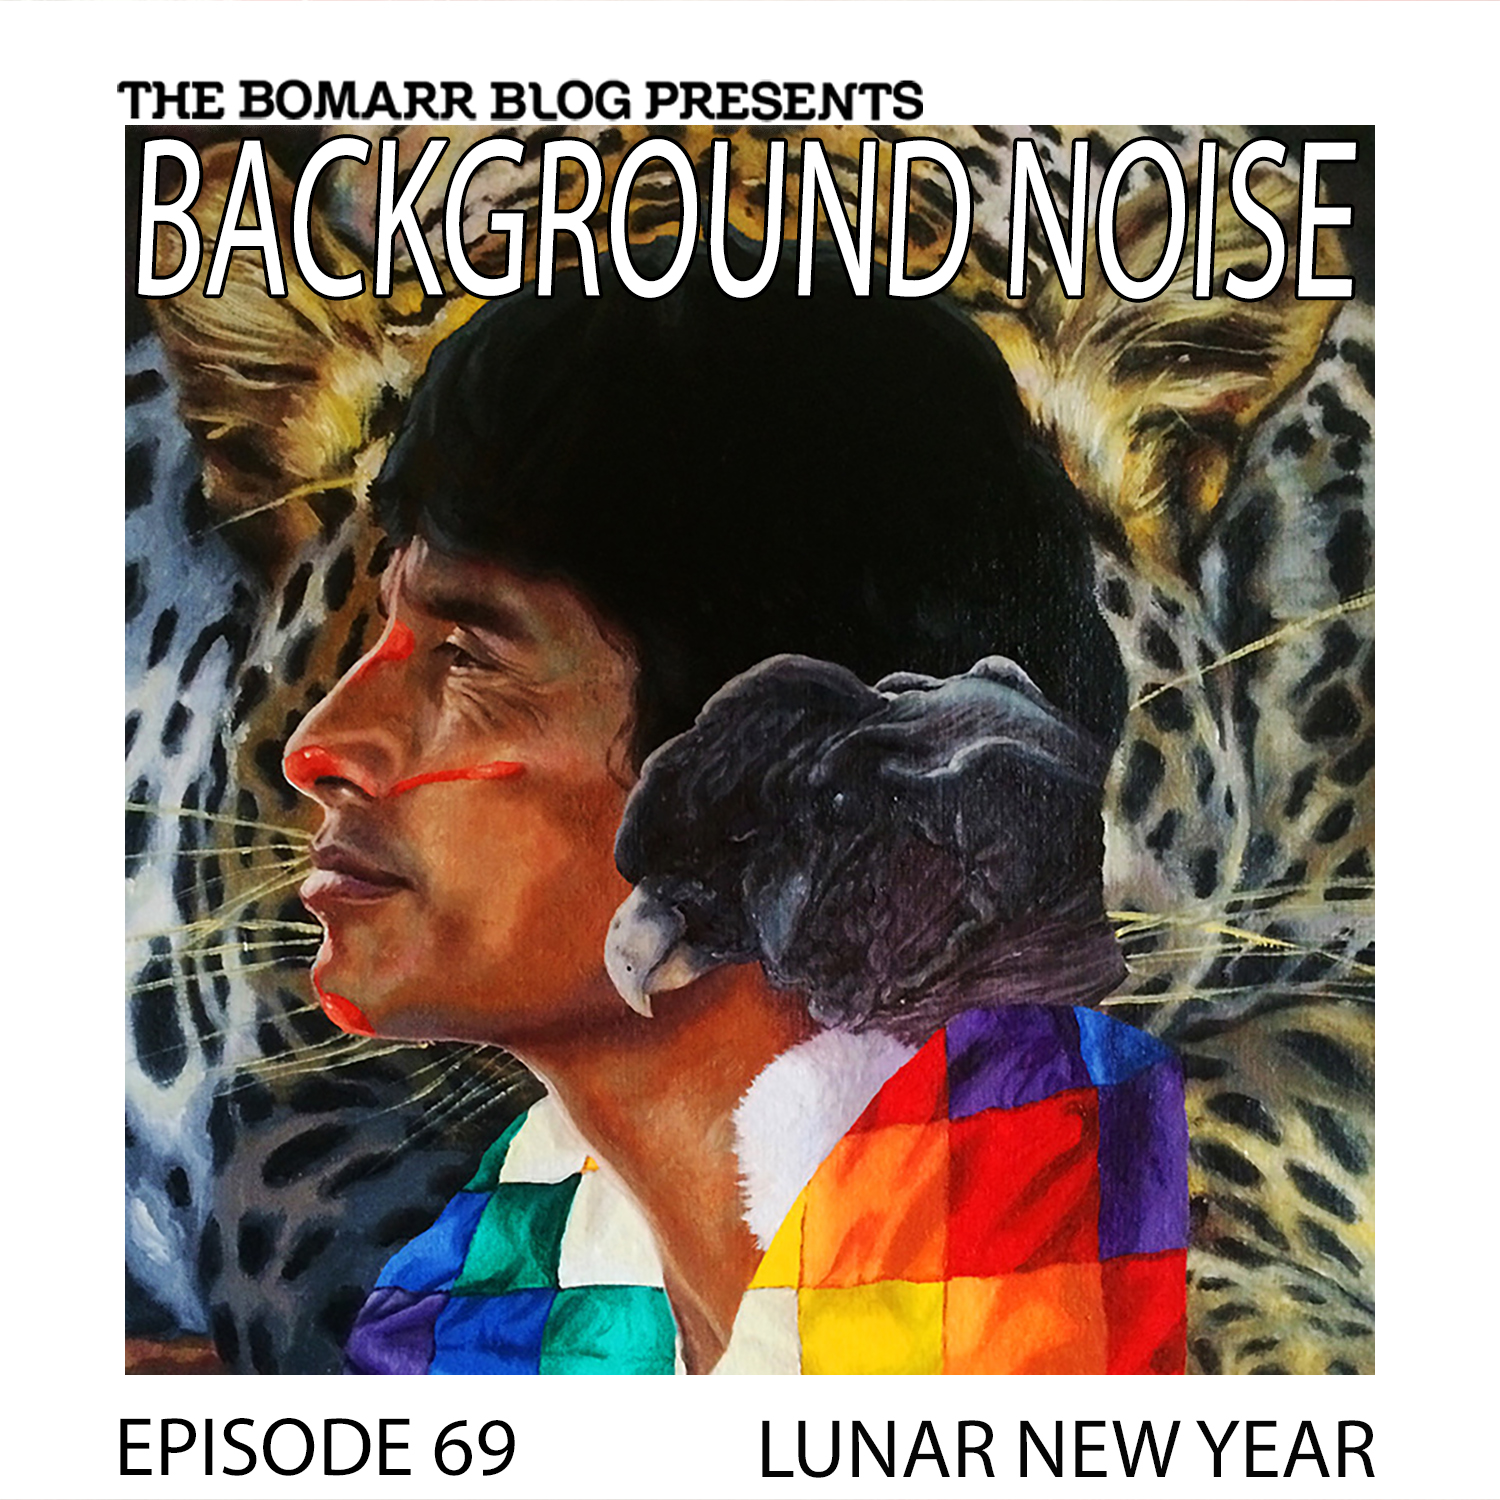 THE BACKGROUND NOISE PODCAST SERIES FOCUSES ON THE MUSIC THAT ARTISTS LISTEN TO WHEN THEY WORK, WHAT MUSIC INSPIRES THEM, OR JUST MUSIC THEY LIKE. THIS WEEK, IN EPISODE 69,THE FOCUS IS ON ARTIST LUNAR NEW YEAR.